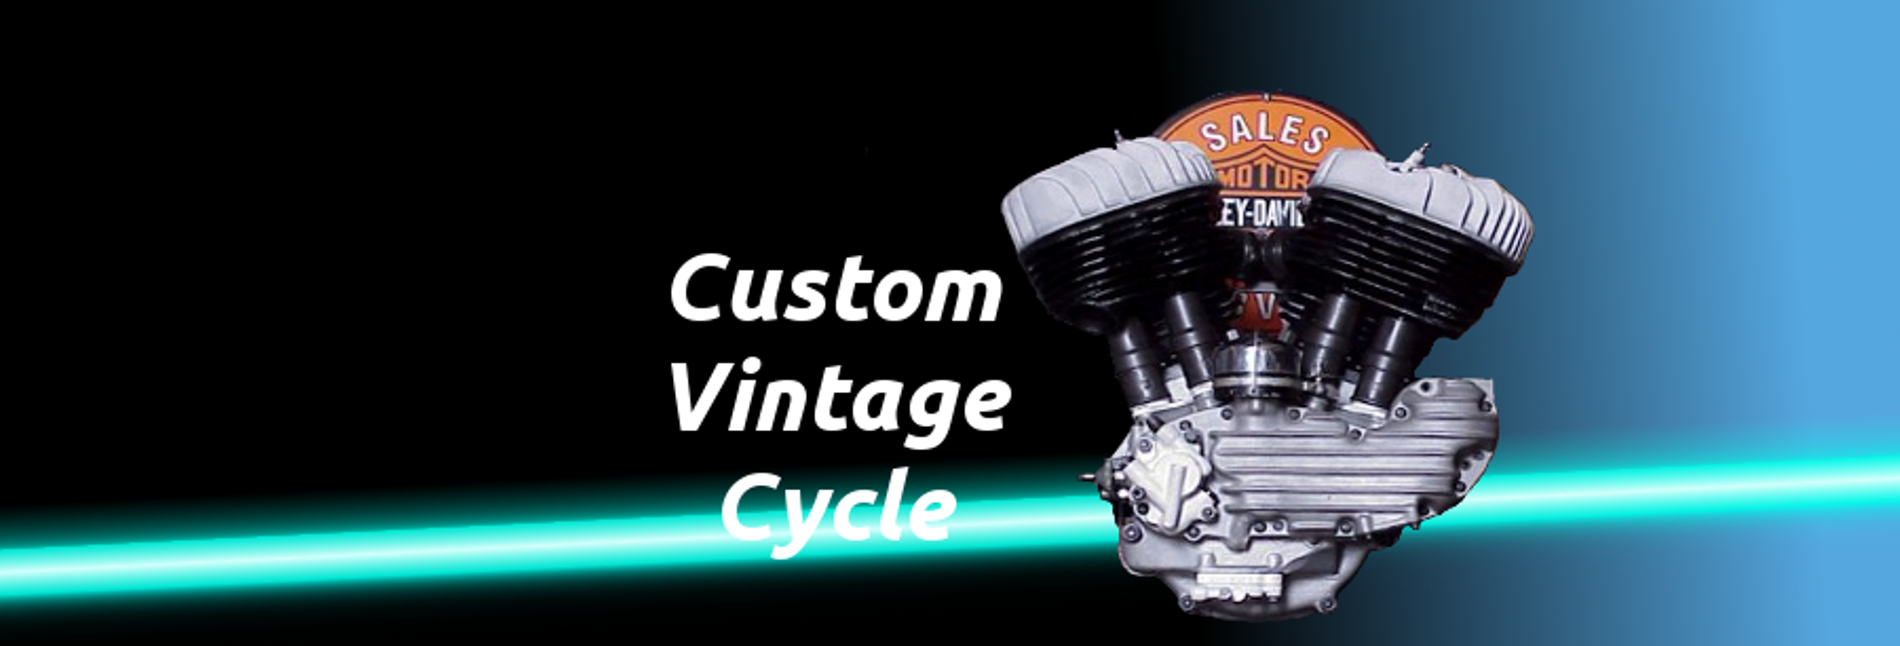 Custom Vintage Cycle Motorcycle Shop